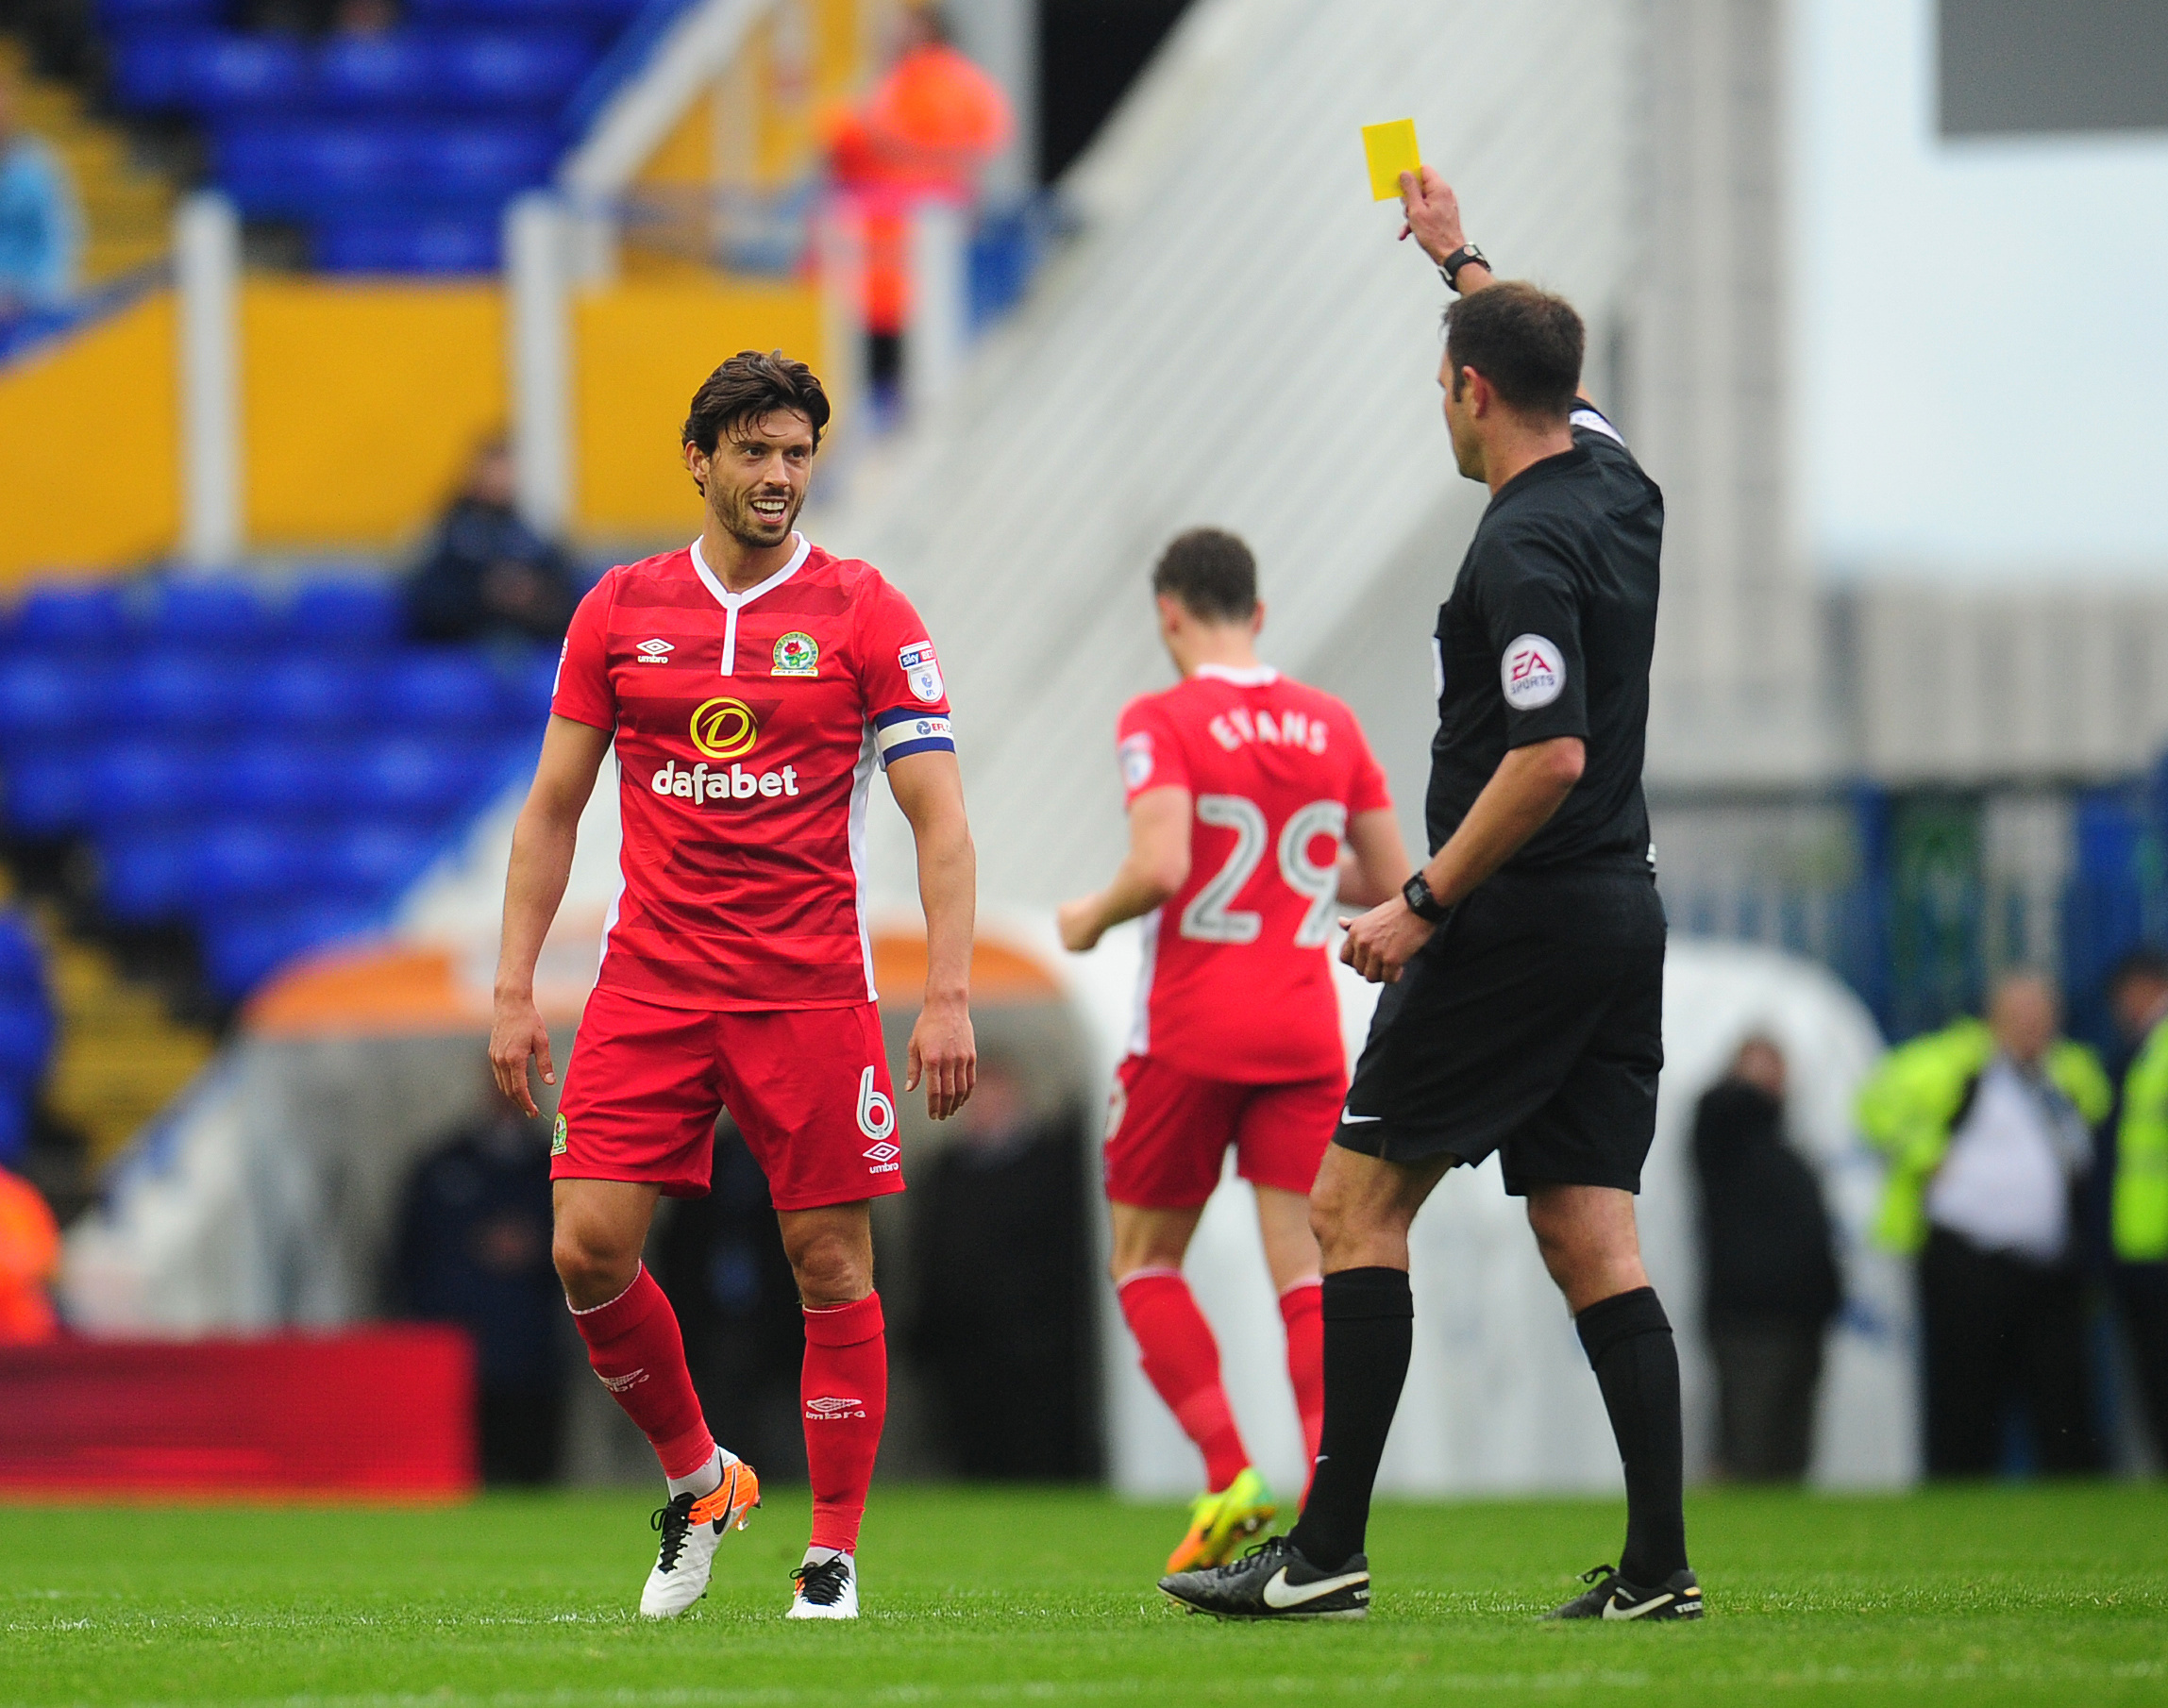 Blackburn Rovers' Jason Lowe is shown a yellow card by referee James Linington